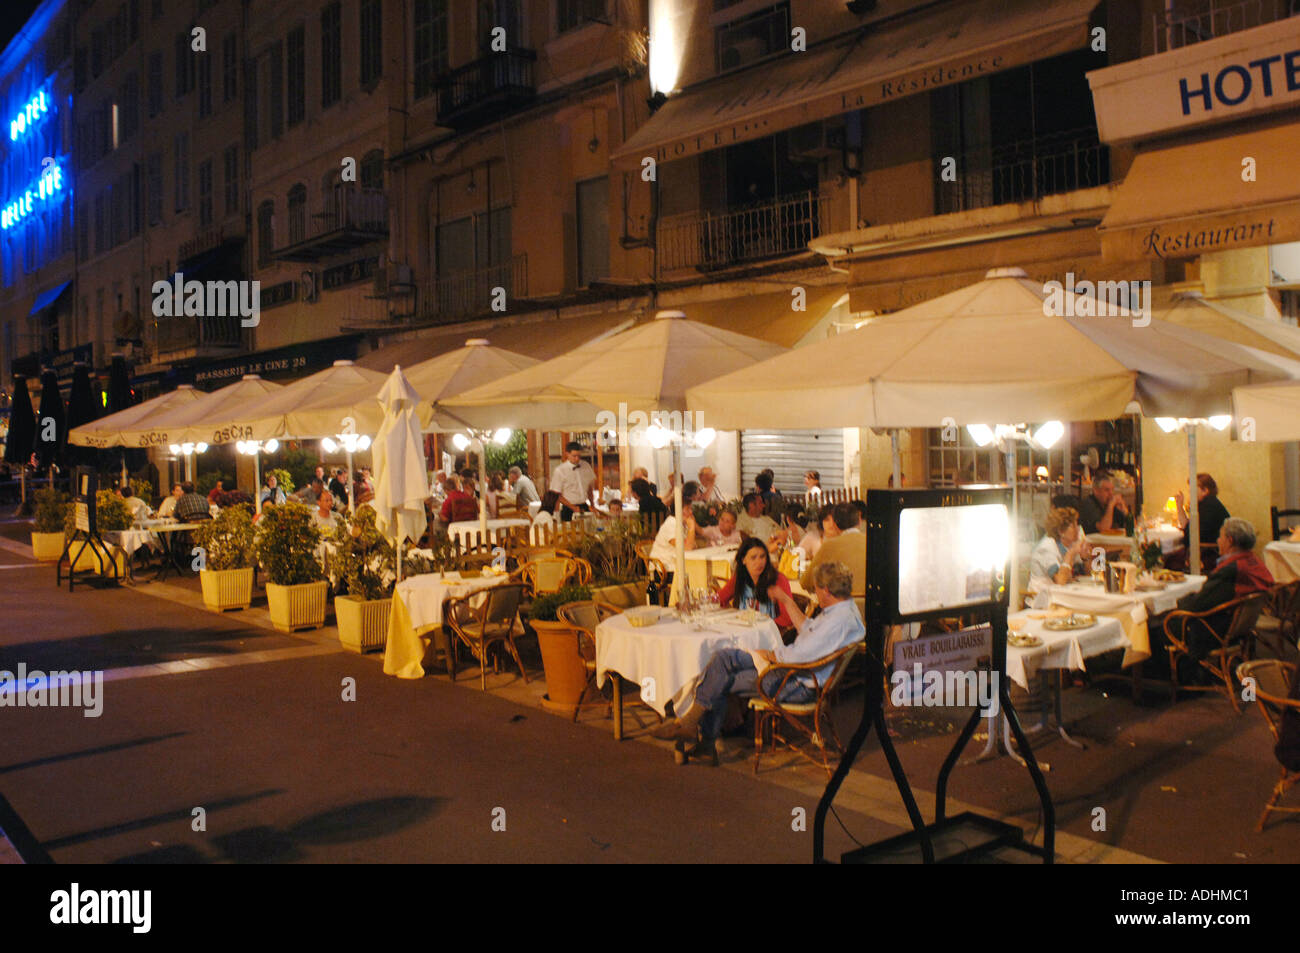 France marseille le vieux port the old port outdoor dining very stock photo 4382912 alamy - Bouillabaisse marseille vieux port ...